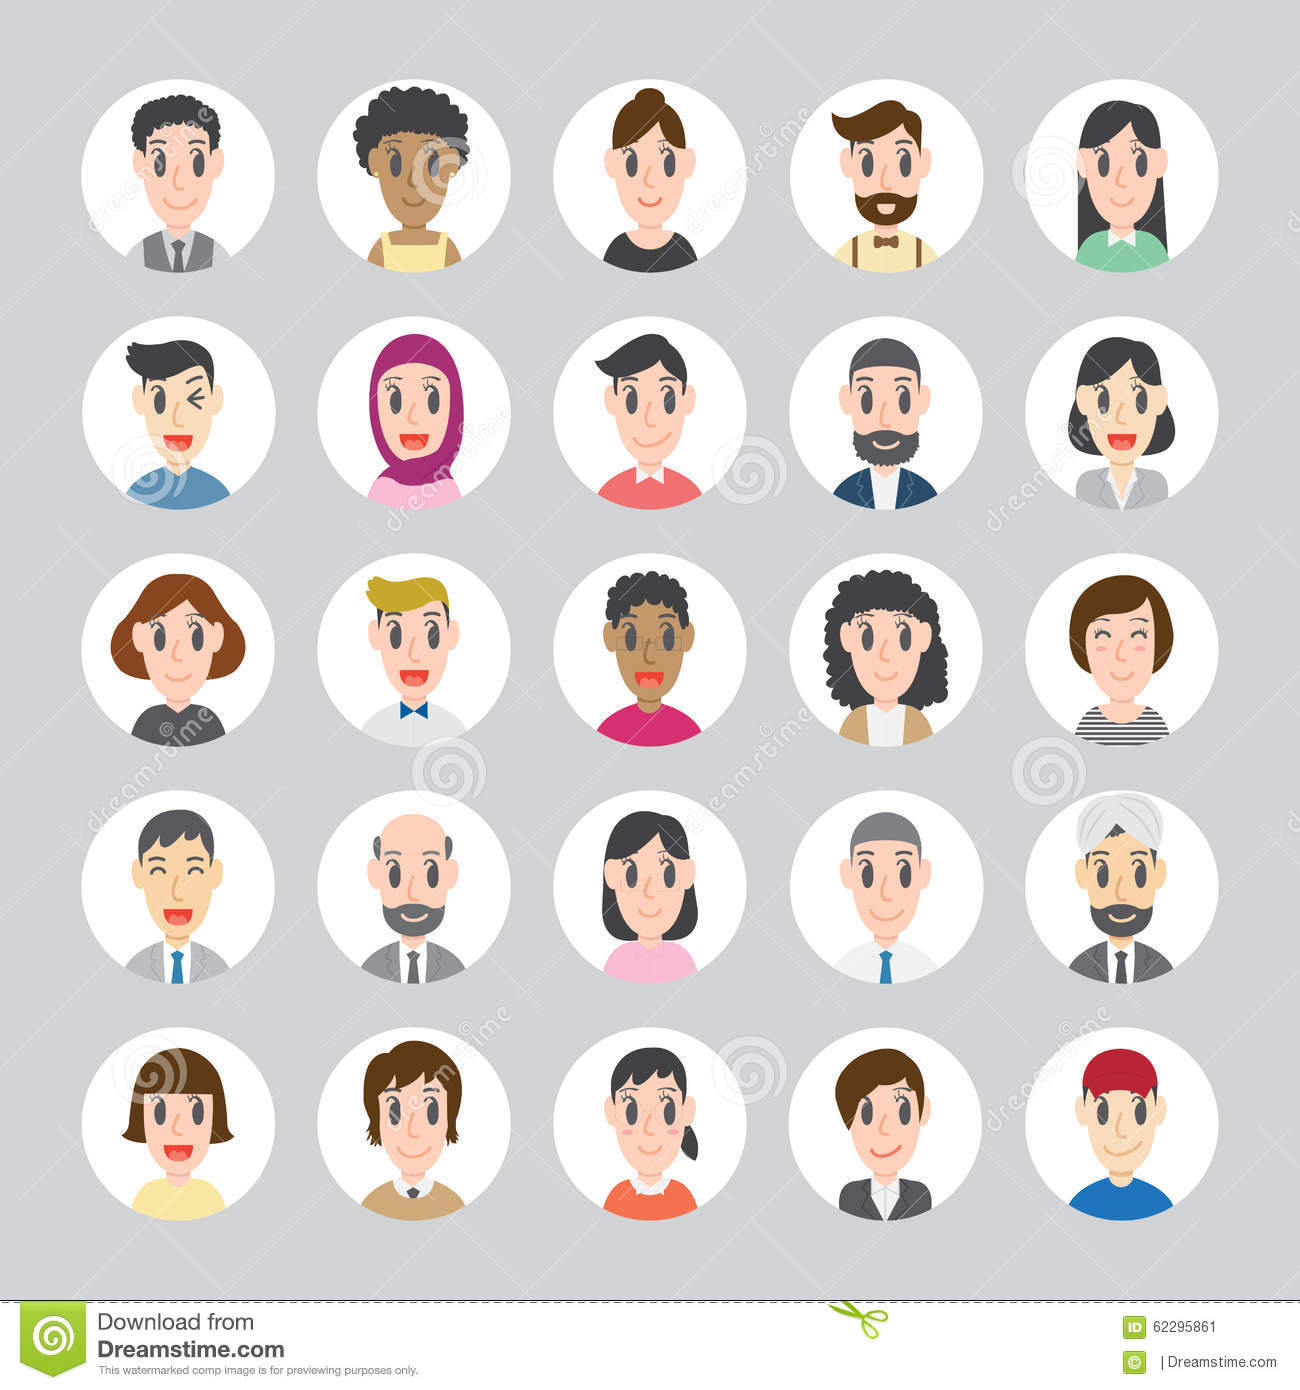 Set Of Diverse Round Avatars With Facial Features